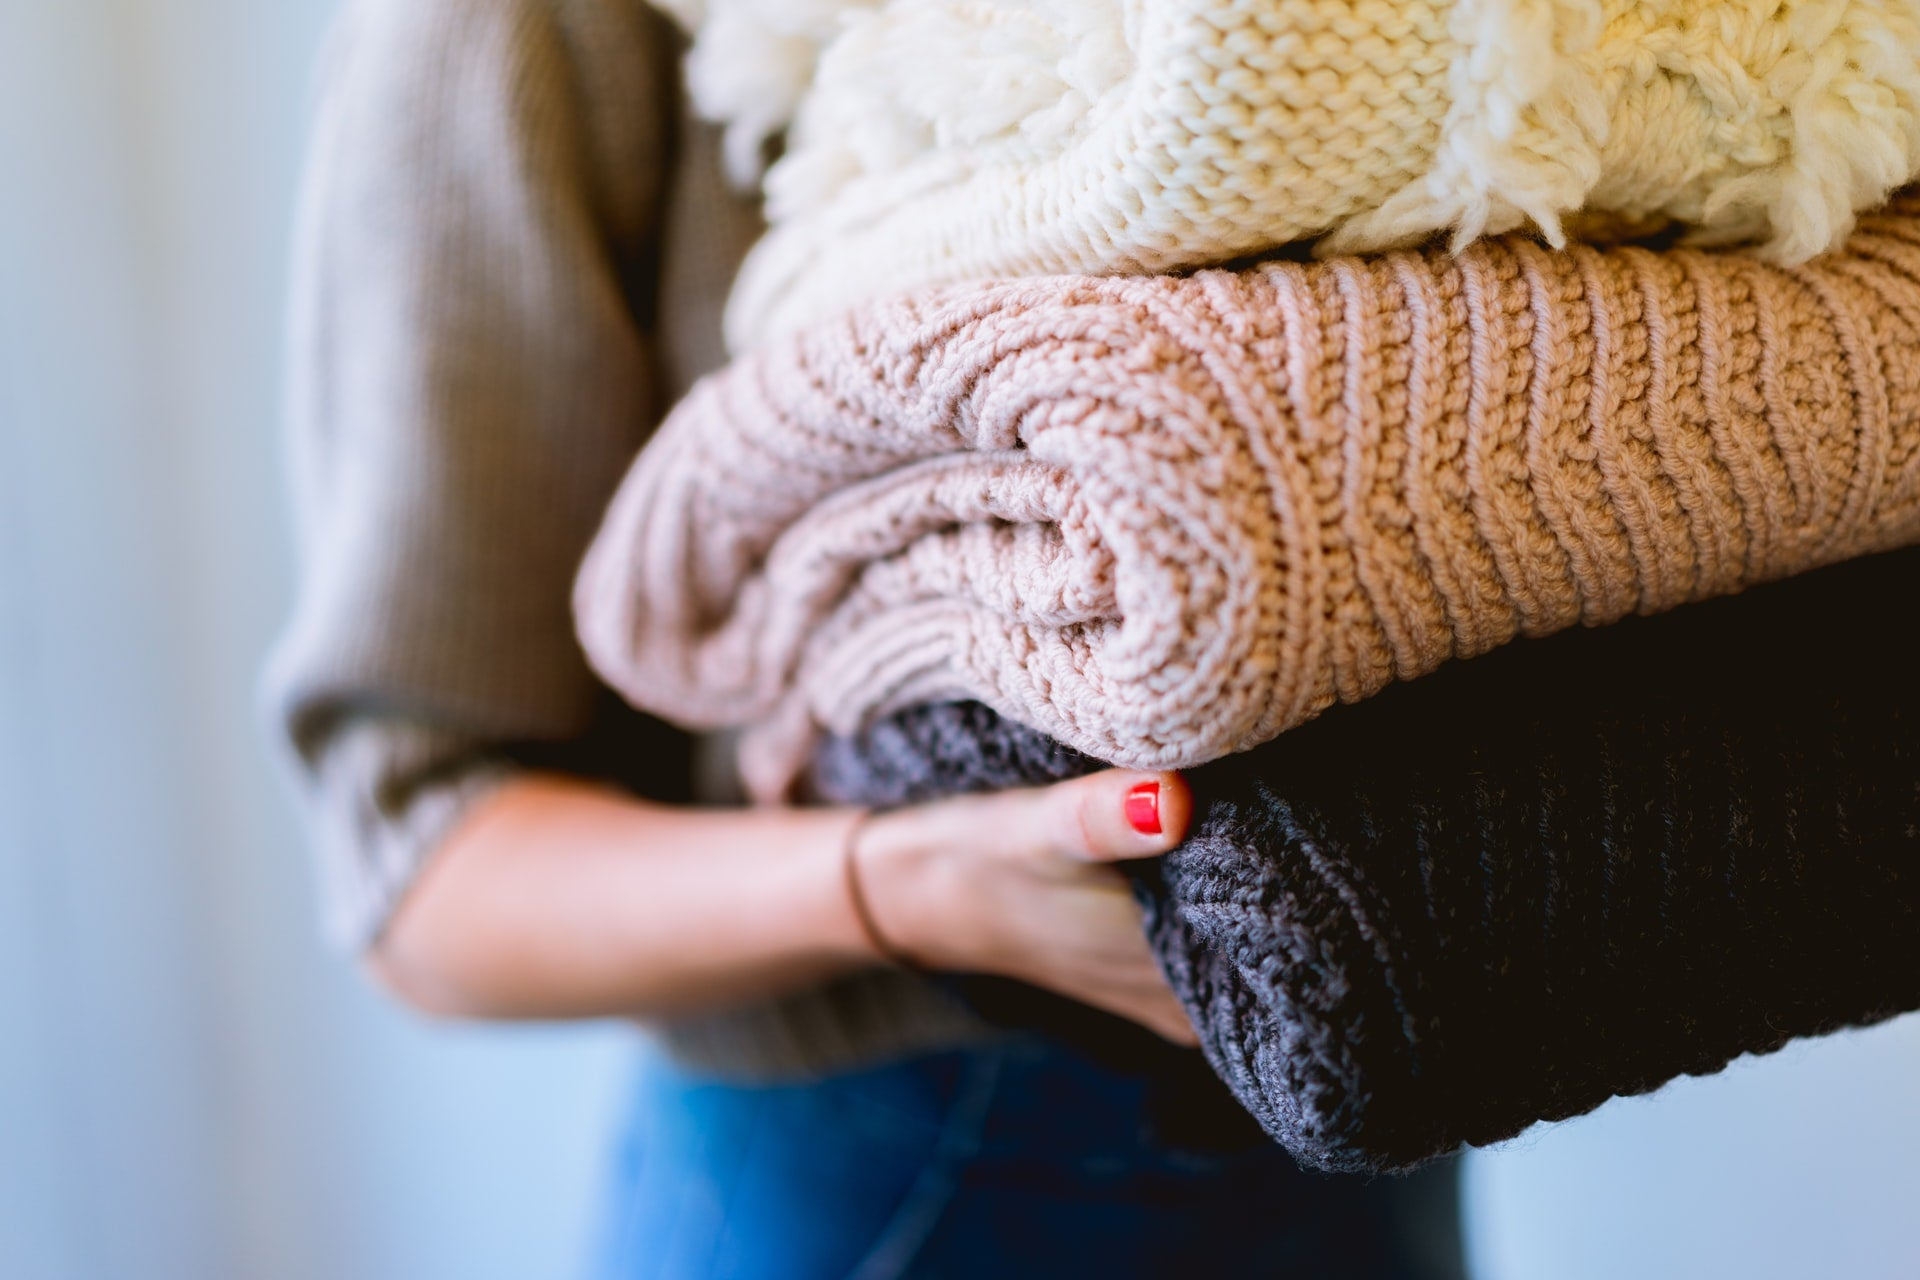 A woman carrying knit sweaters, doing laundry as chores are one of the nicest gifts for people with anxiety.